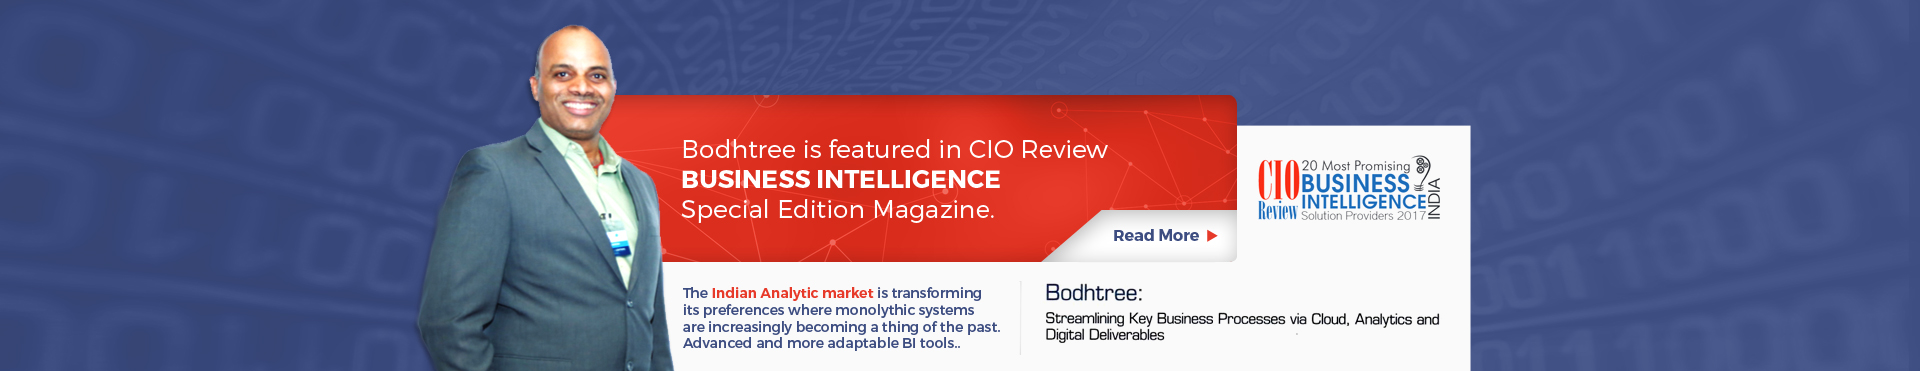 Bodhtree is featured in CIO Review Business Intelligence Special Edition